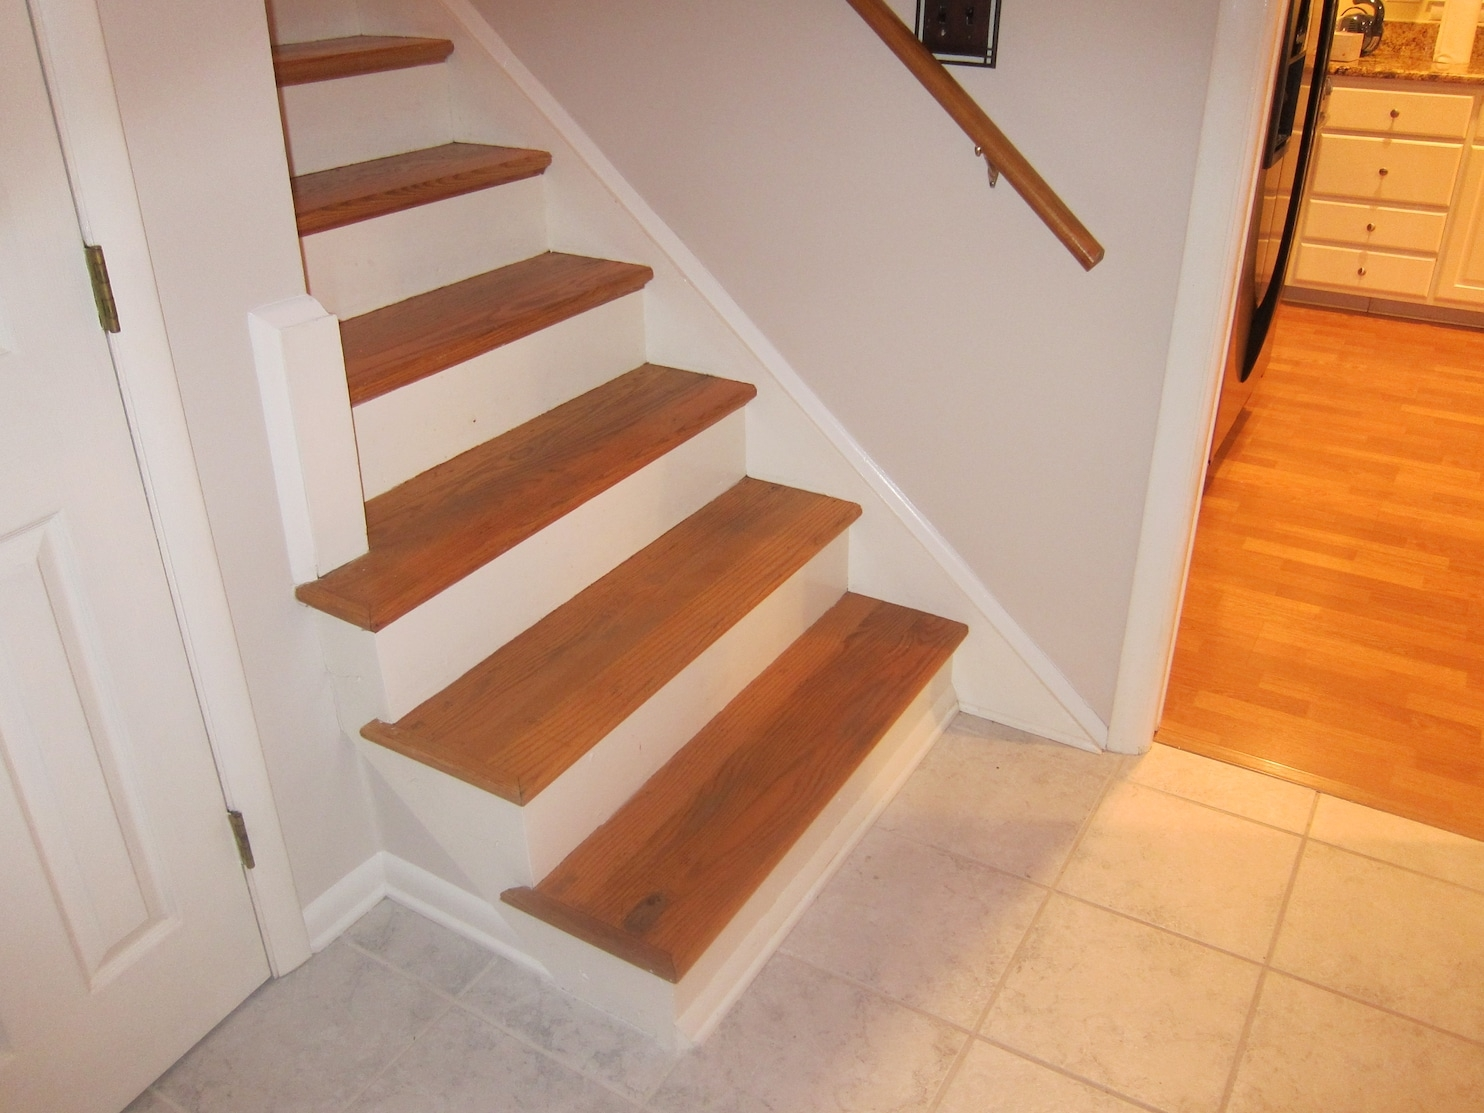 How To Make A Tricky Staircase Safe For Children The Washington Post   Split Level Stair Railing   Electrical Conduit   Wood   Julia   Entryway   Tri Level